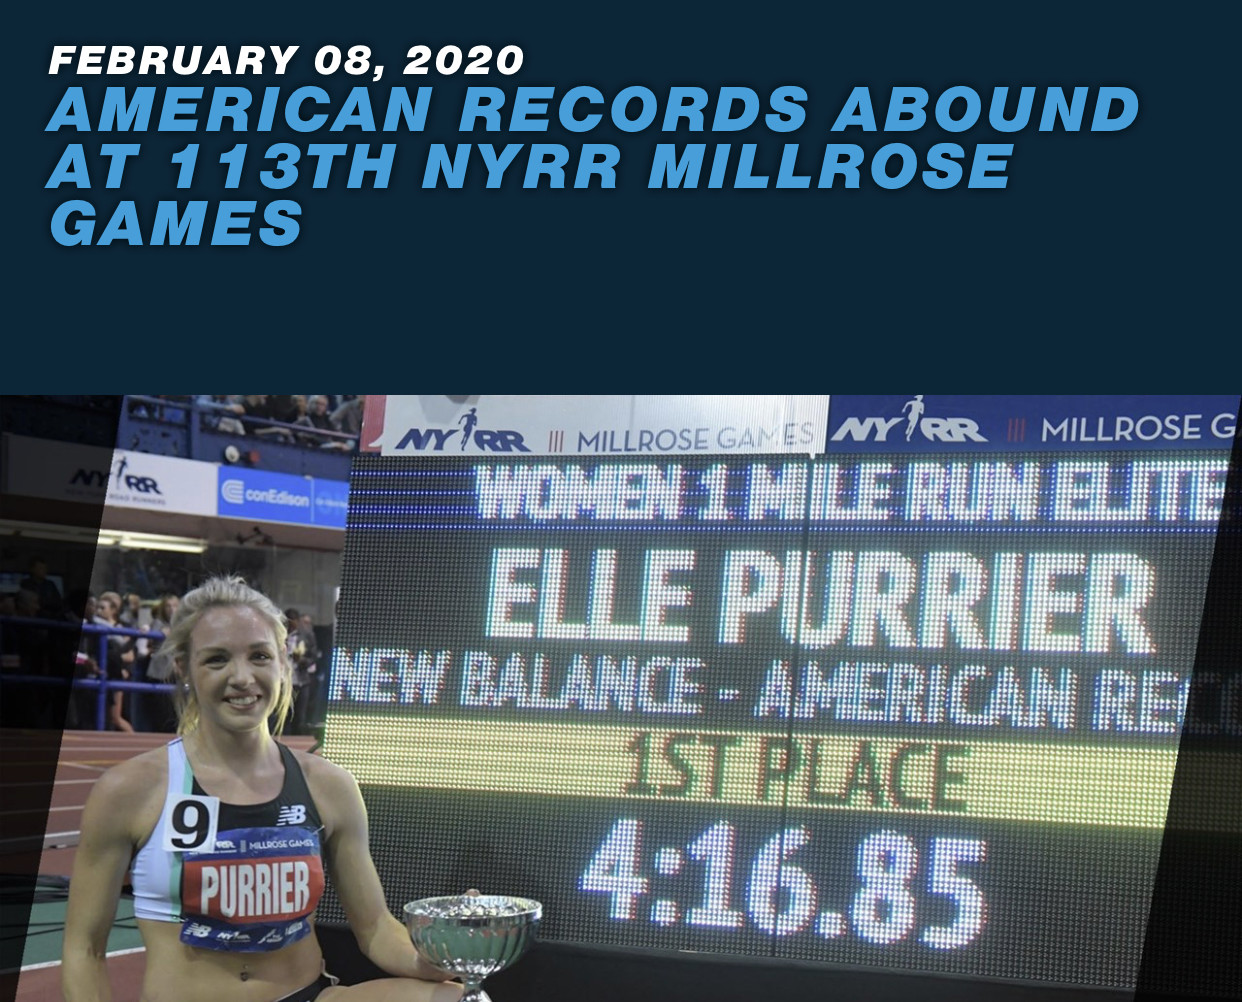 Three indoor American records were set Saturday at the 113th NYRR Millrose  Games in front of a sold out crowd